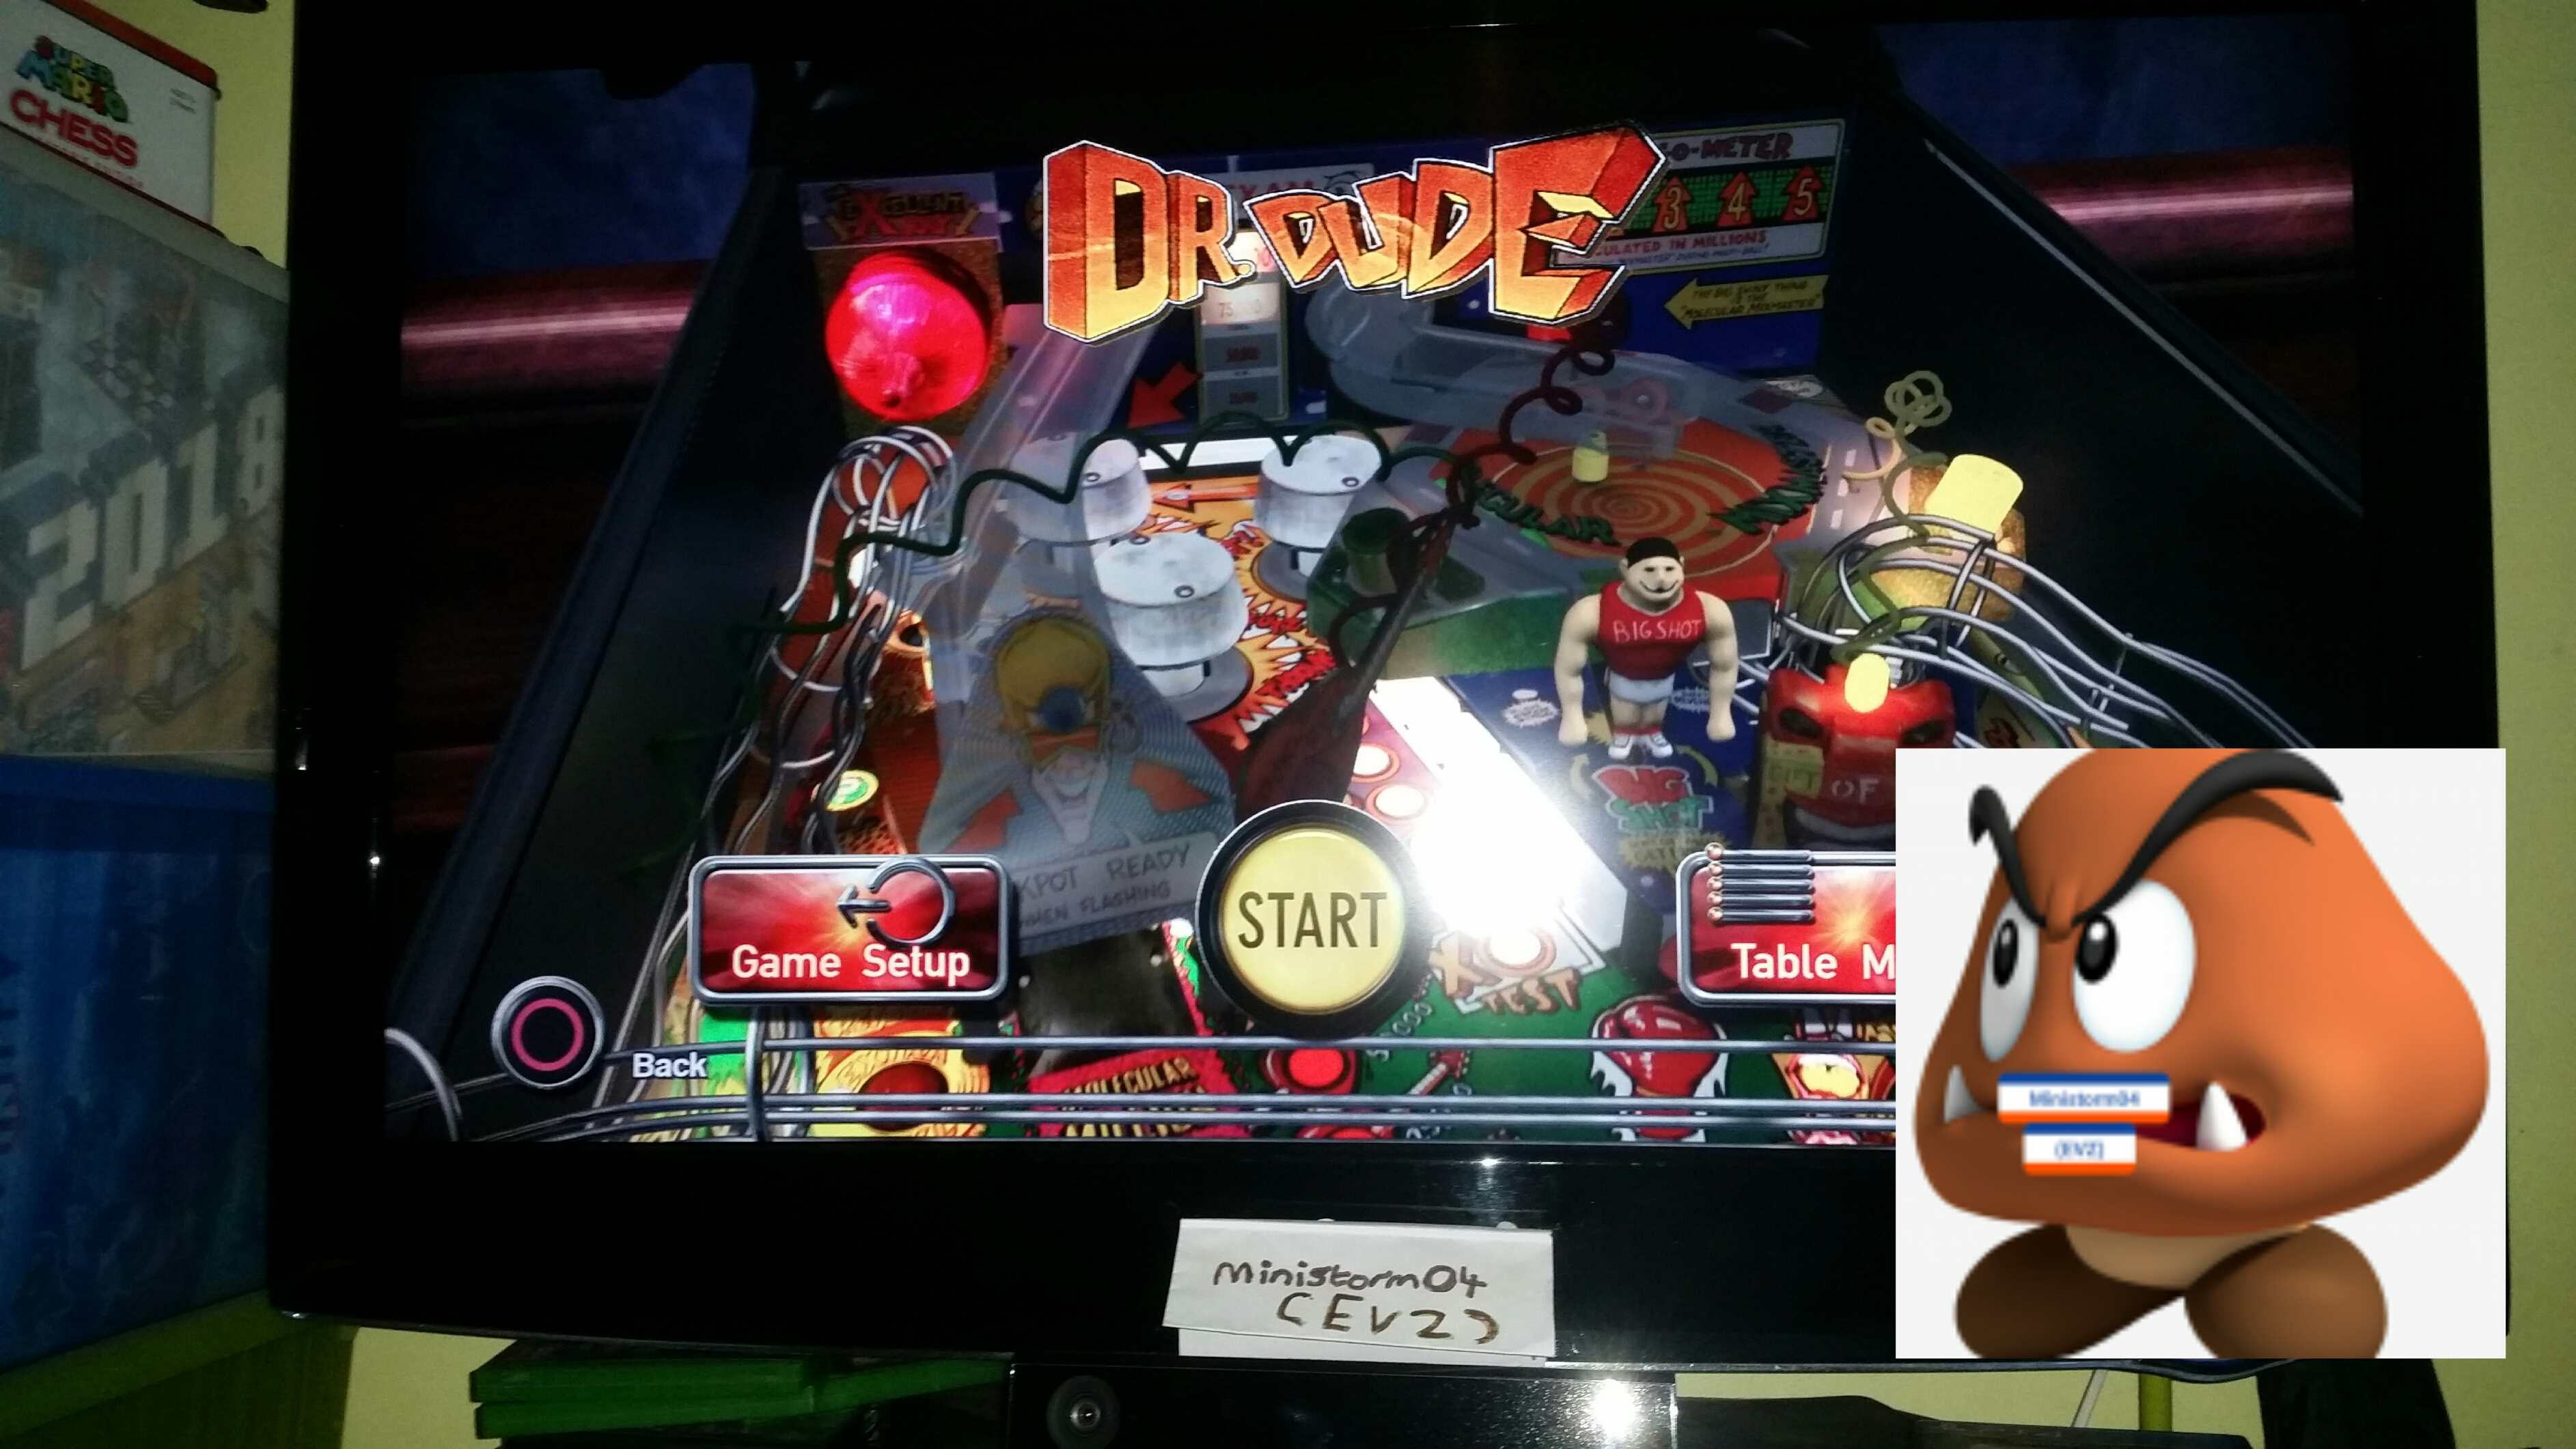 Pinball Arcade: Dr. Dude 2,432,040 points